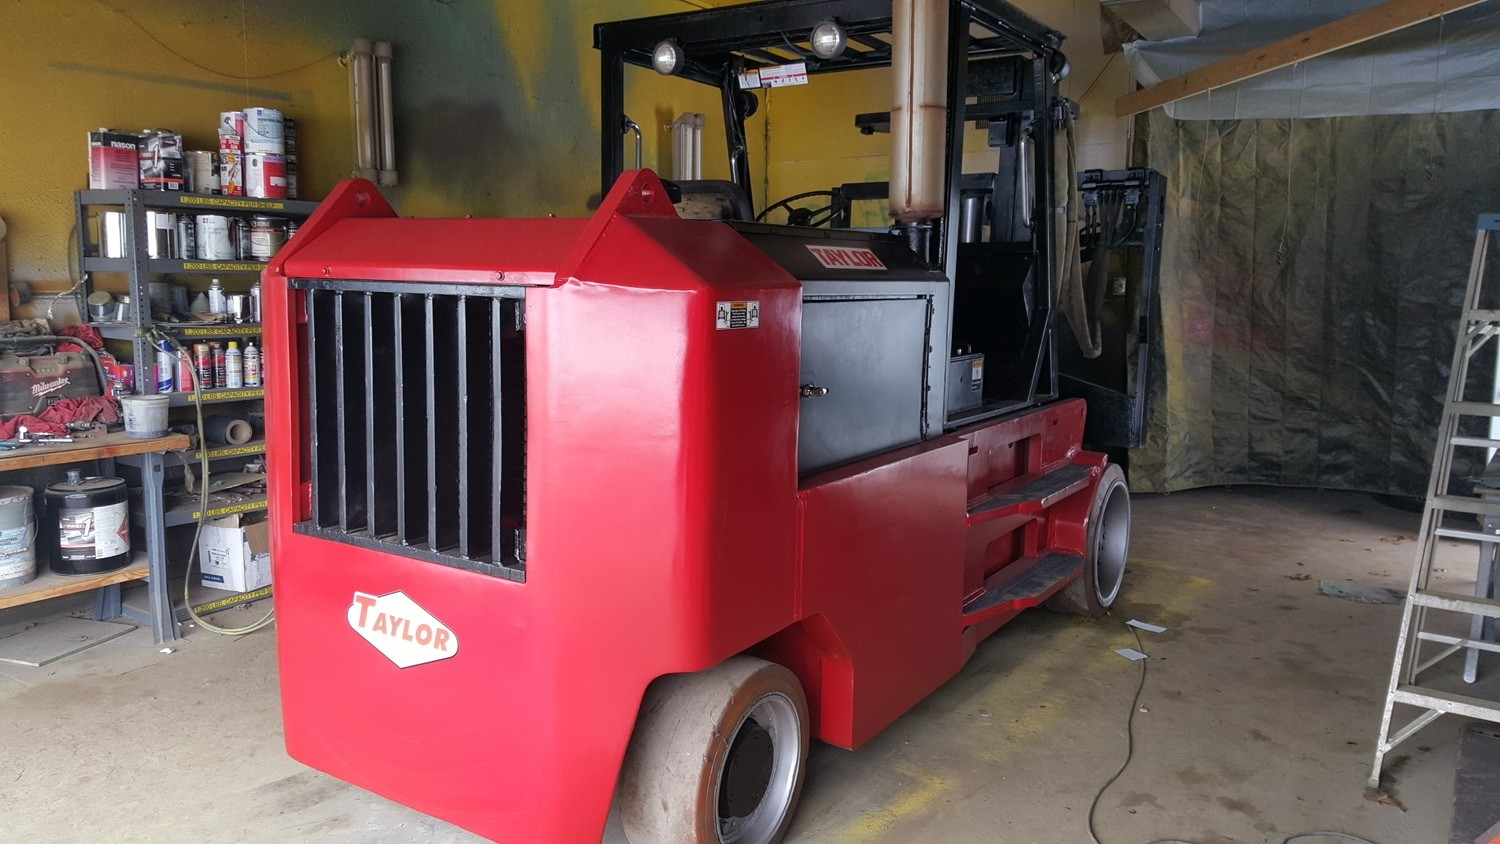 40,000lb Taylor TC-400L Forklift For Sale 20 Ton